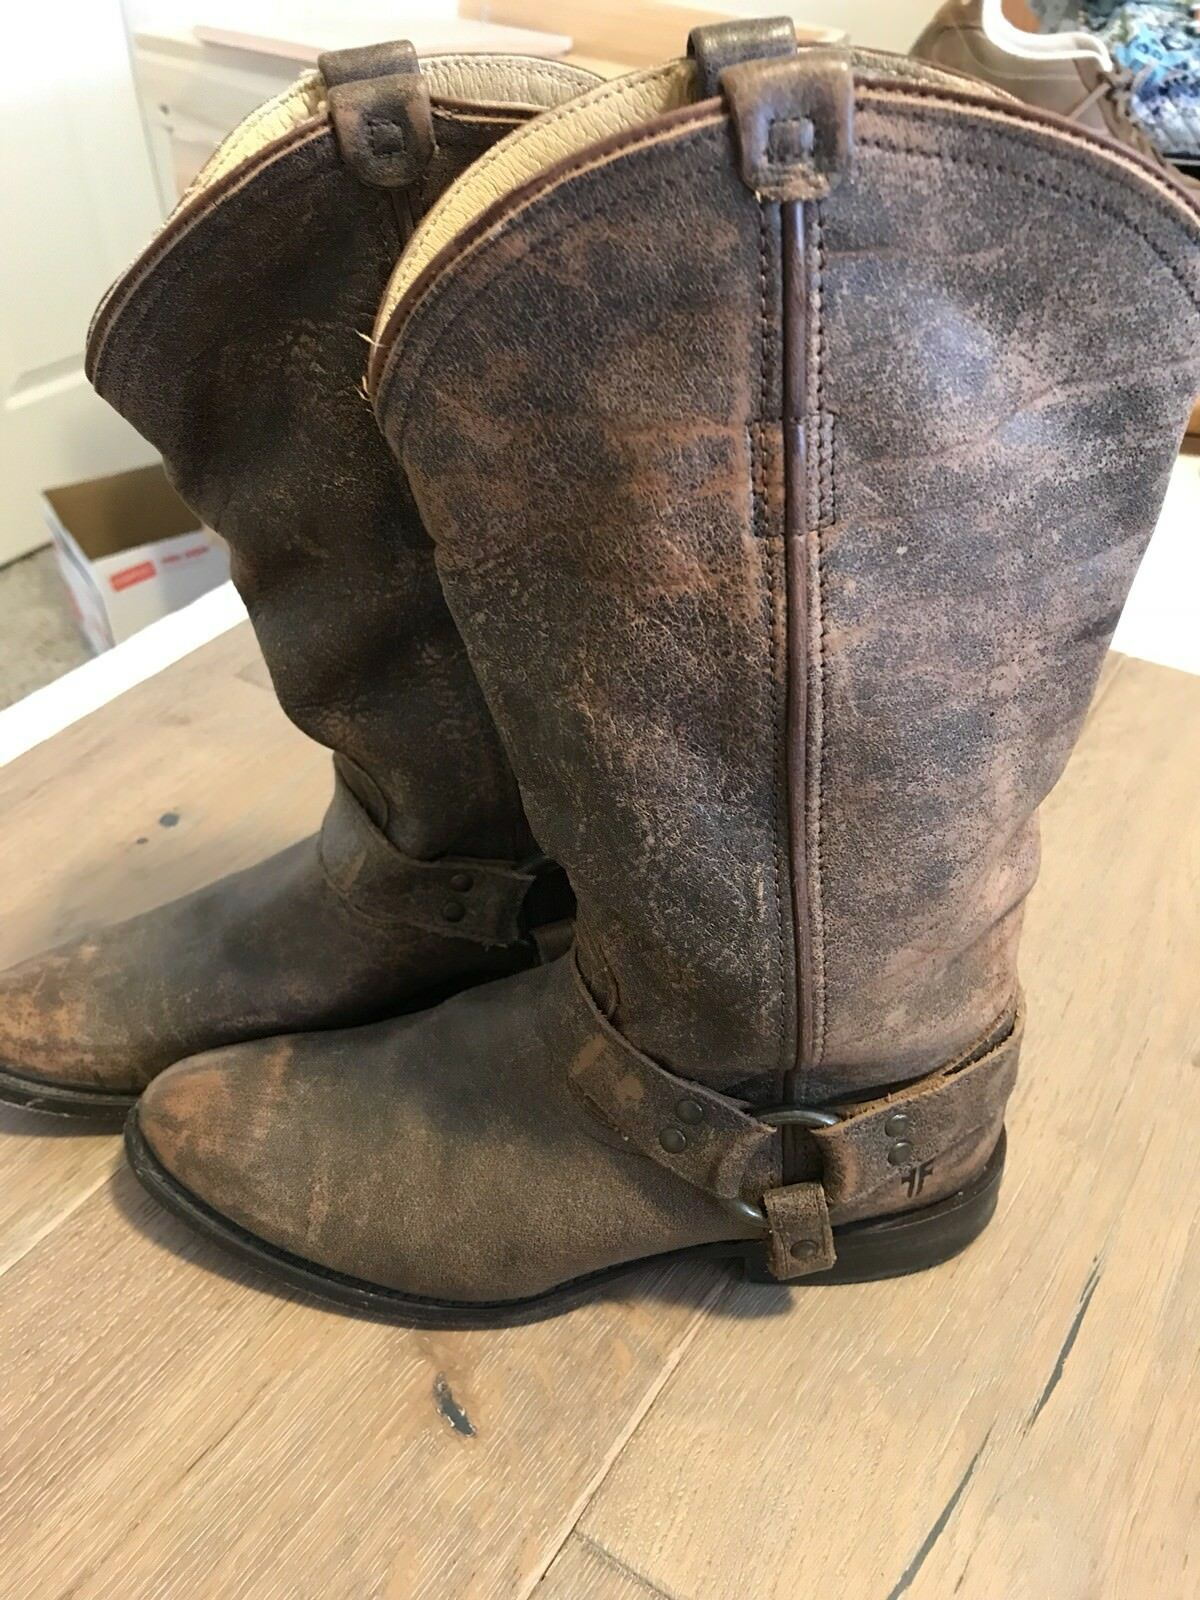 Frye Harness Tall Boots Distressed Brown Leather Size 7.5B